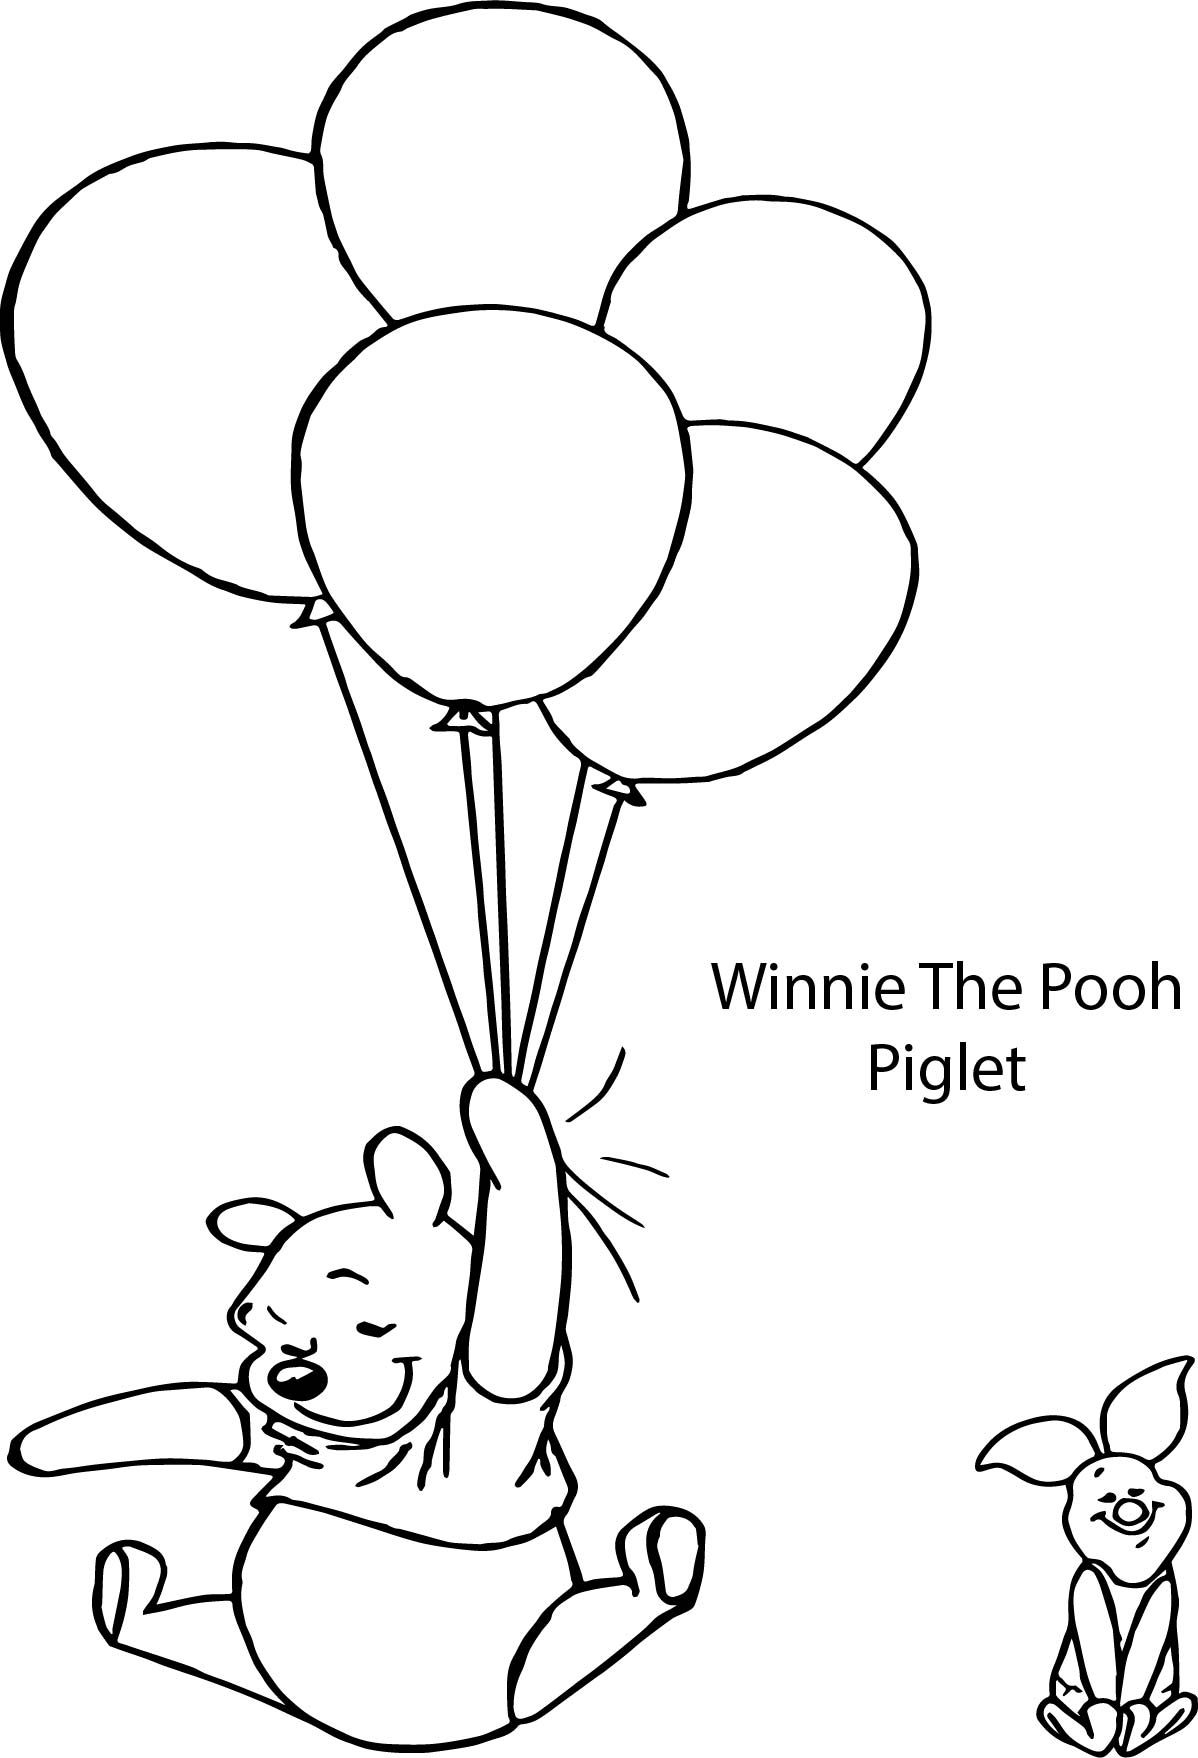 Cool Winnie The Pooh And Piglet Balloon Coloring Page Monkey Coloring Pages Monster Coloring Pages Curious George Coloring Pages